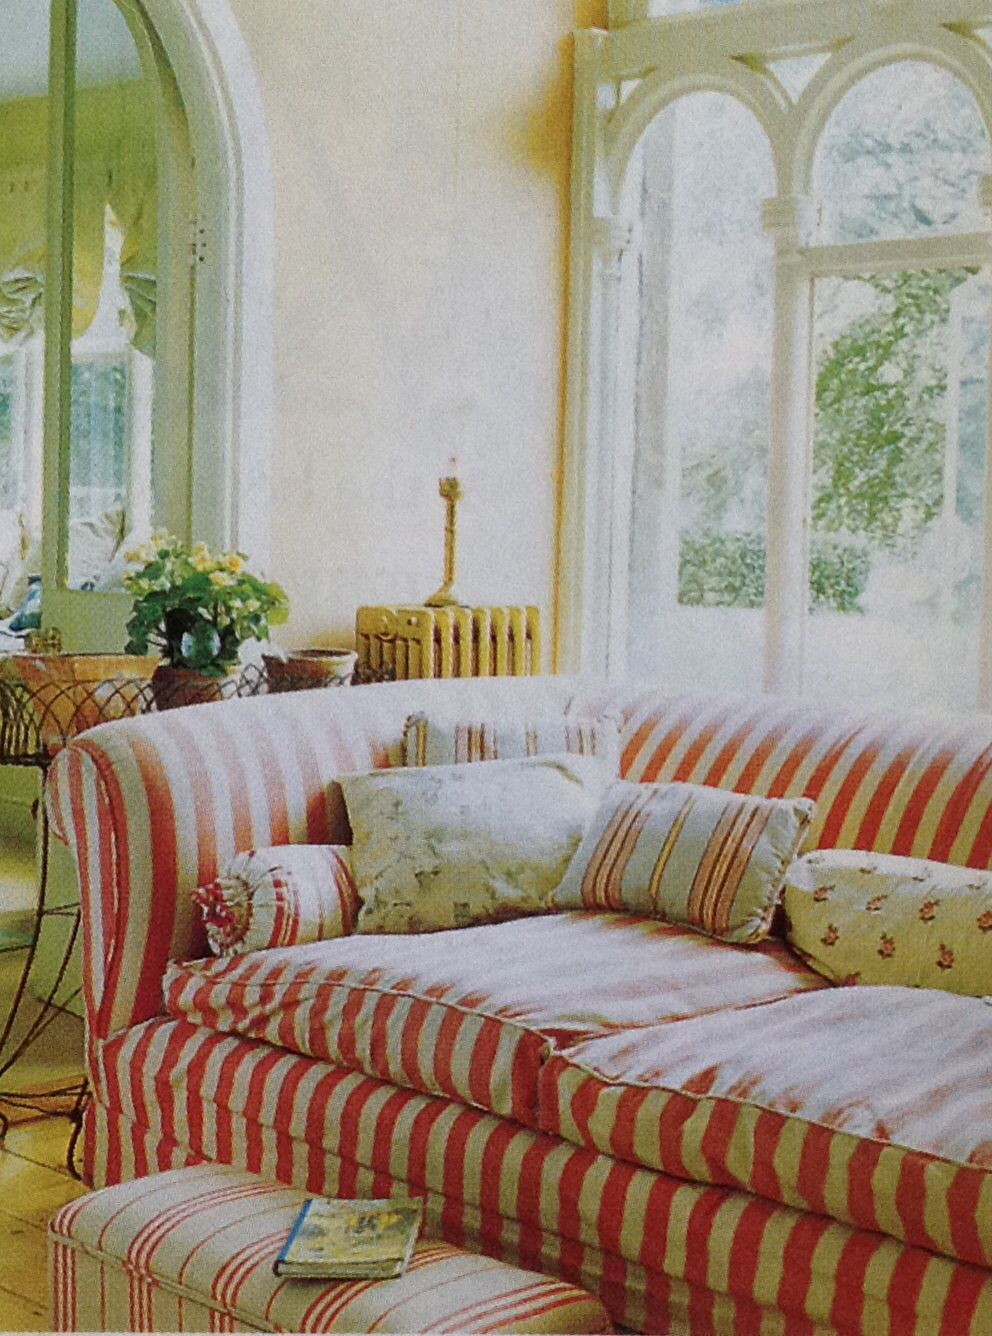 Red Striped Sofa...a Fun Accent